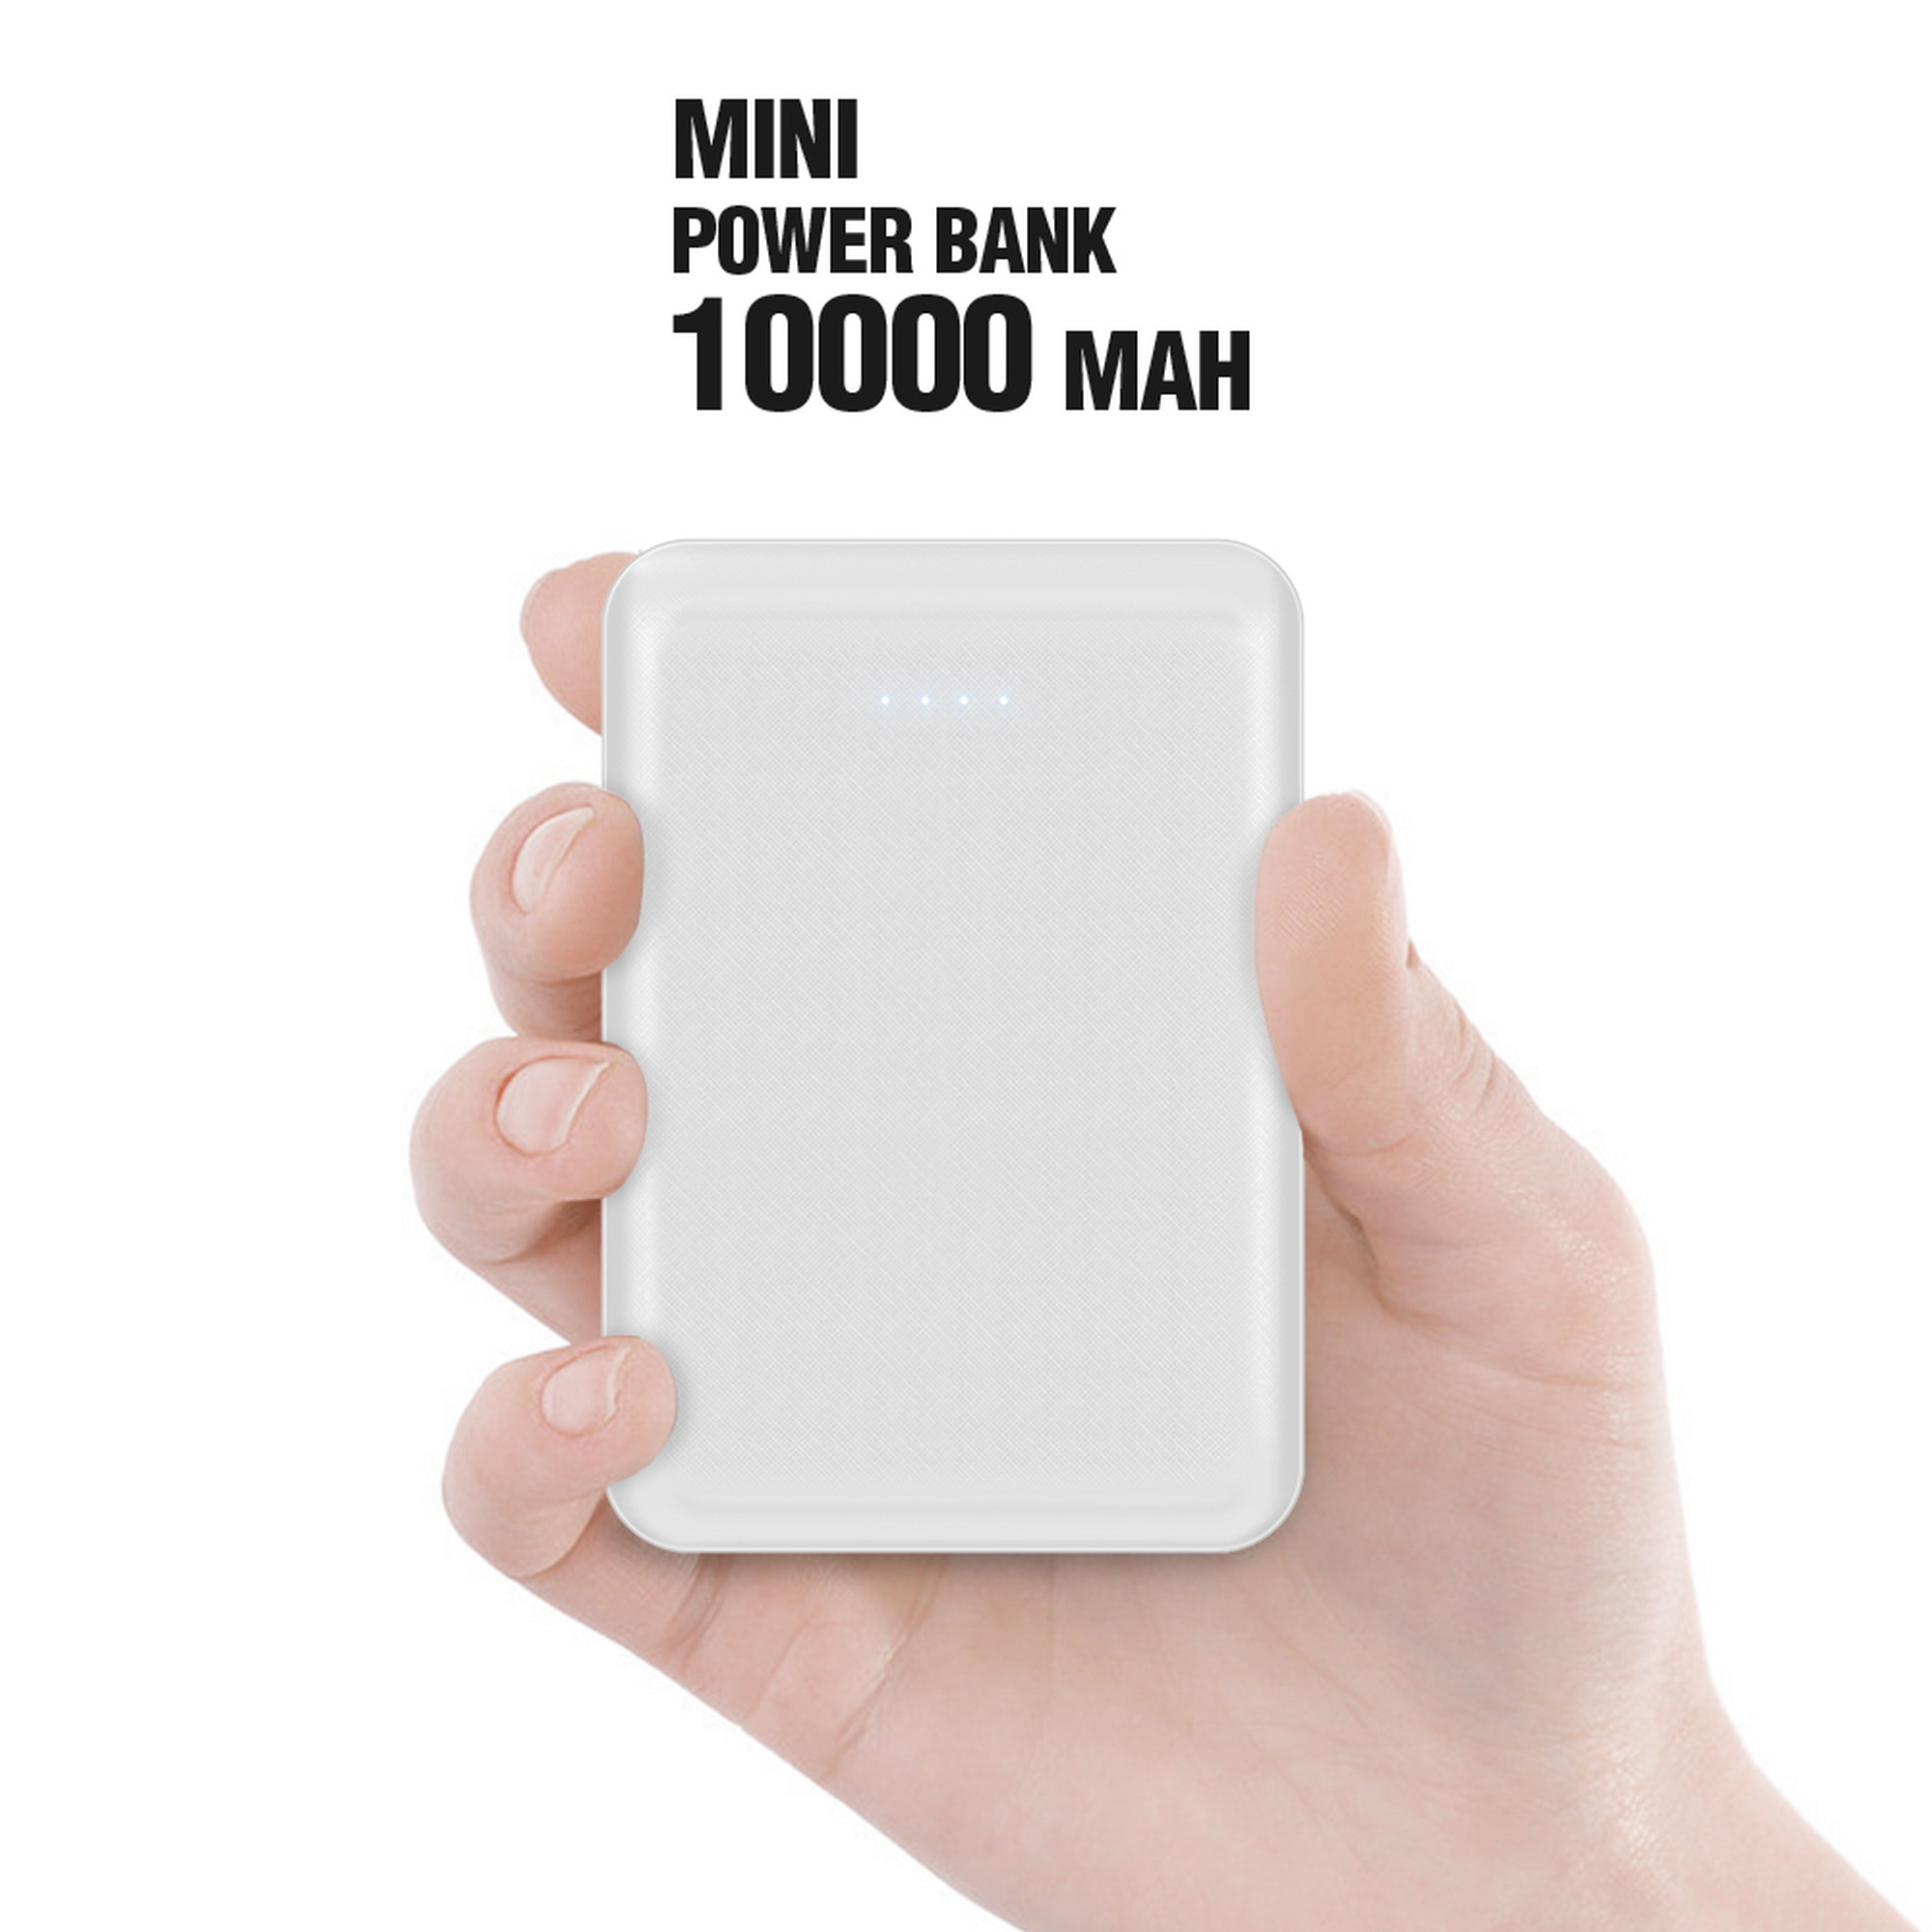 10000mah Portable Battery Charger Luxmo Smallest Bank Fast Charging Pack With 2 Usb Output Ports 5v 4a 1a Compatible Iphone